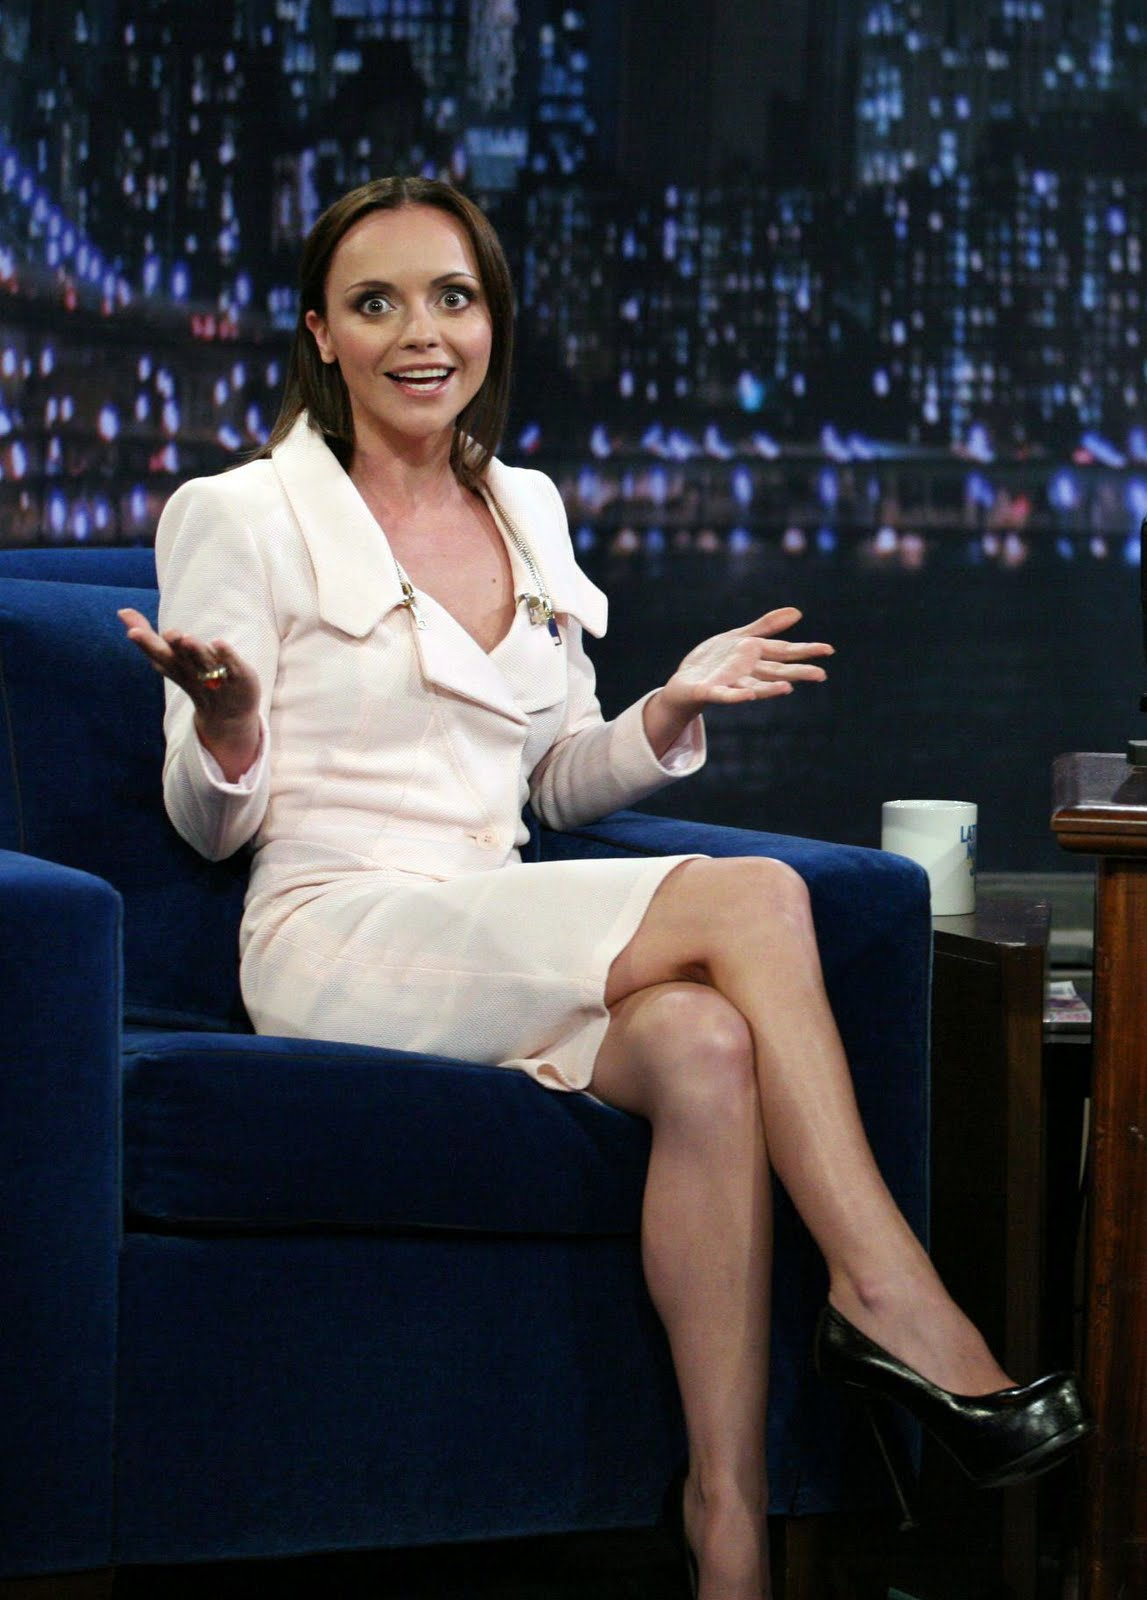 http://1.bp.blogspot.com/-ut29KOgGuWo/TmE1UebZSRI/AAAAAAAAAlg/o5HjU9RbfvQ/s1600/47734_Christina_Ricci_Late_Night_with_Jimmy_Fallon_August_31_2011_05_122_1028lo.jpg